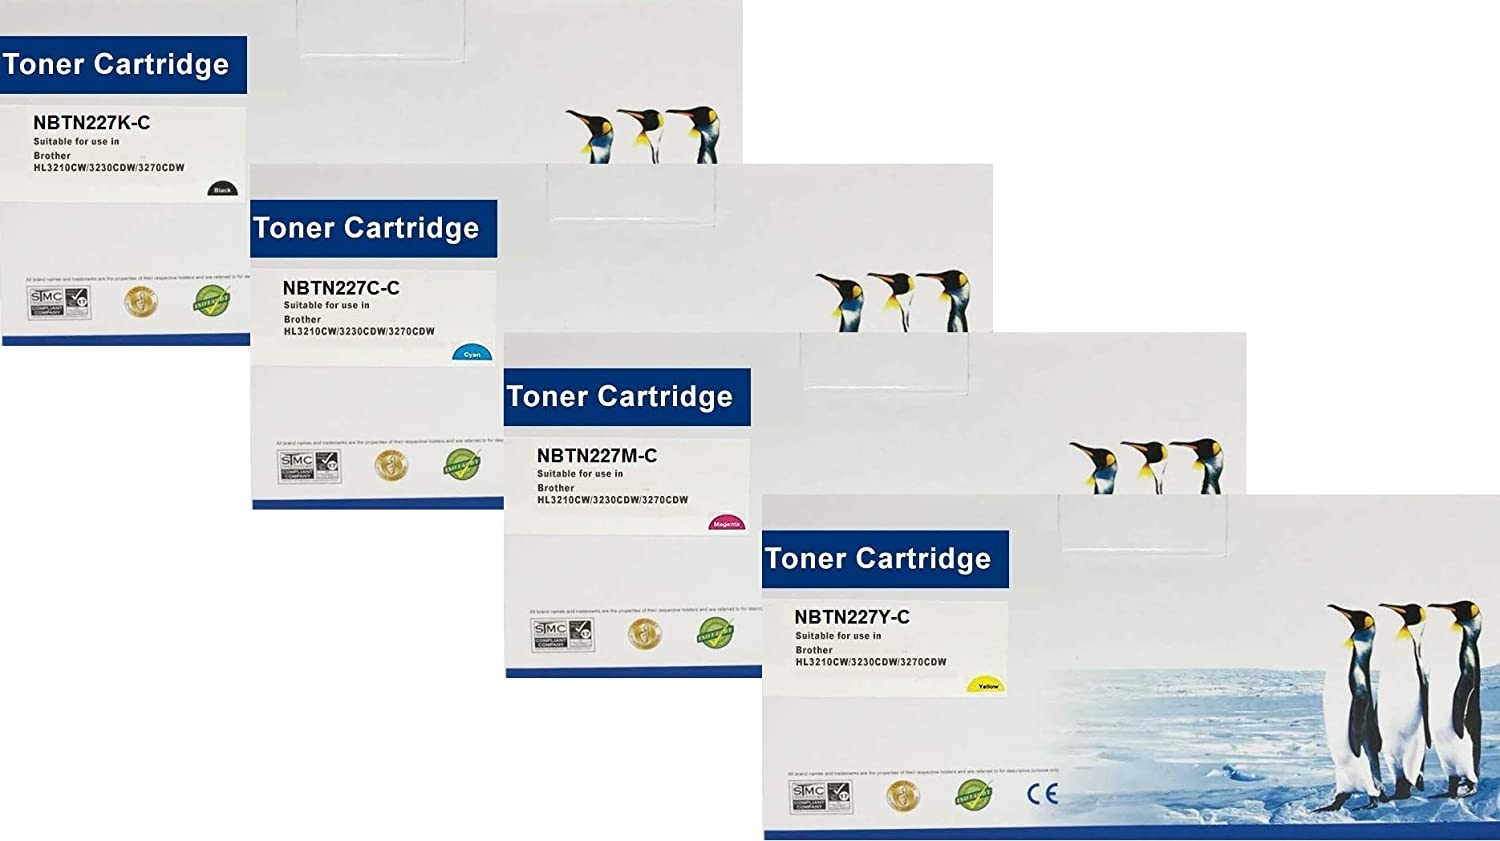 Search4Toner Compatible Replacements for Brother TN227, Black, Cyan, Yellow, Magenta, with Chip, Full Set of Colors, Lower Cost Alternative to Brother Brand, Overall Defect Rates Less Than 1%